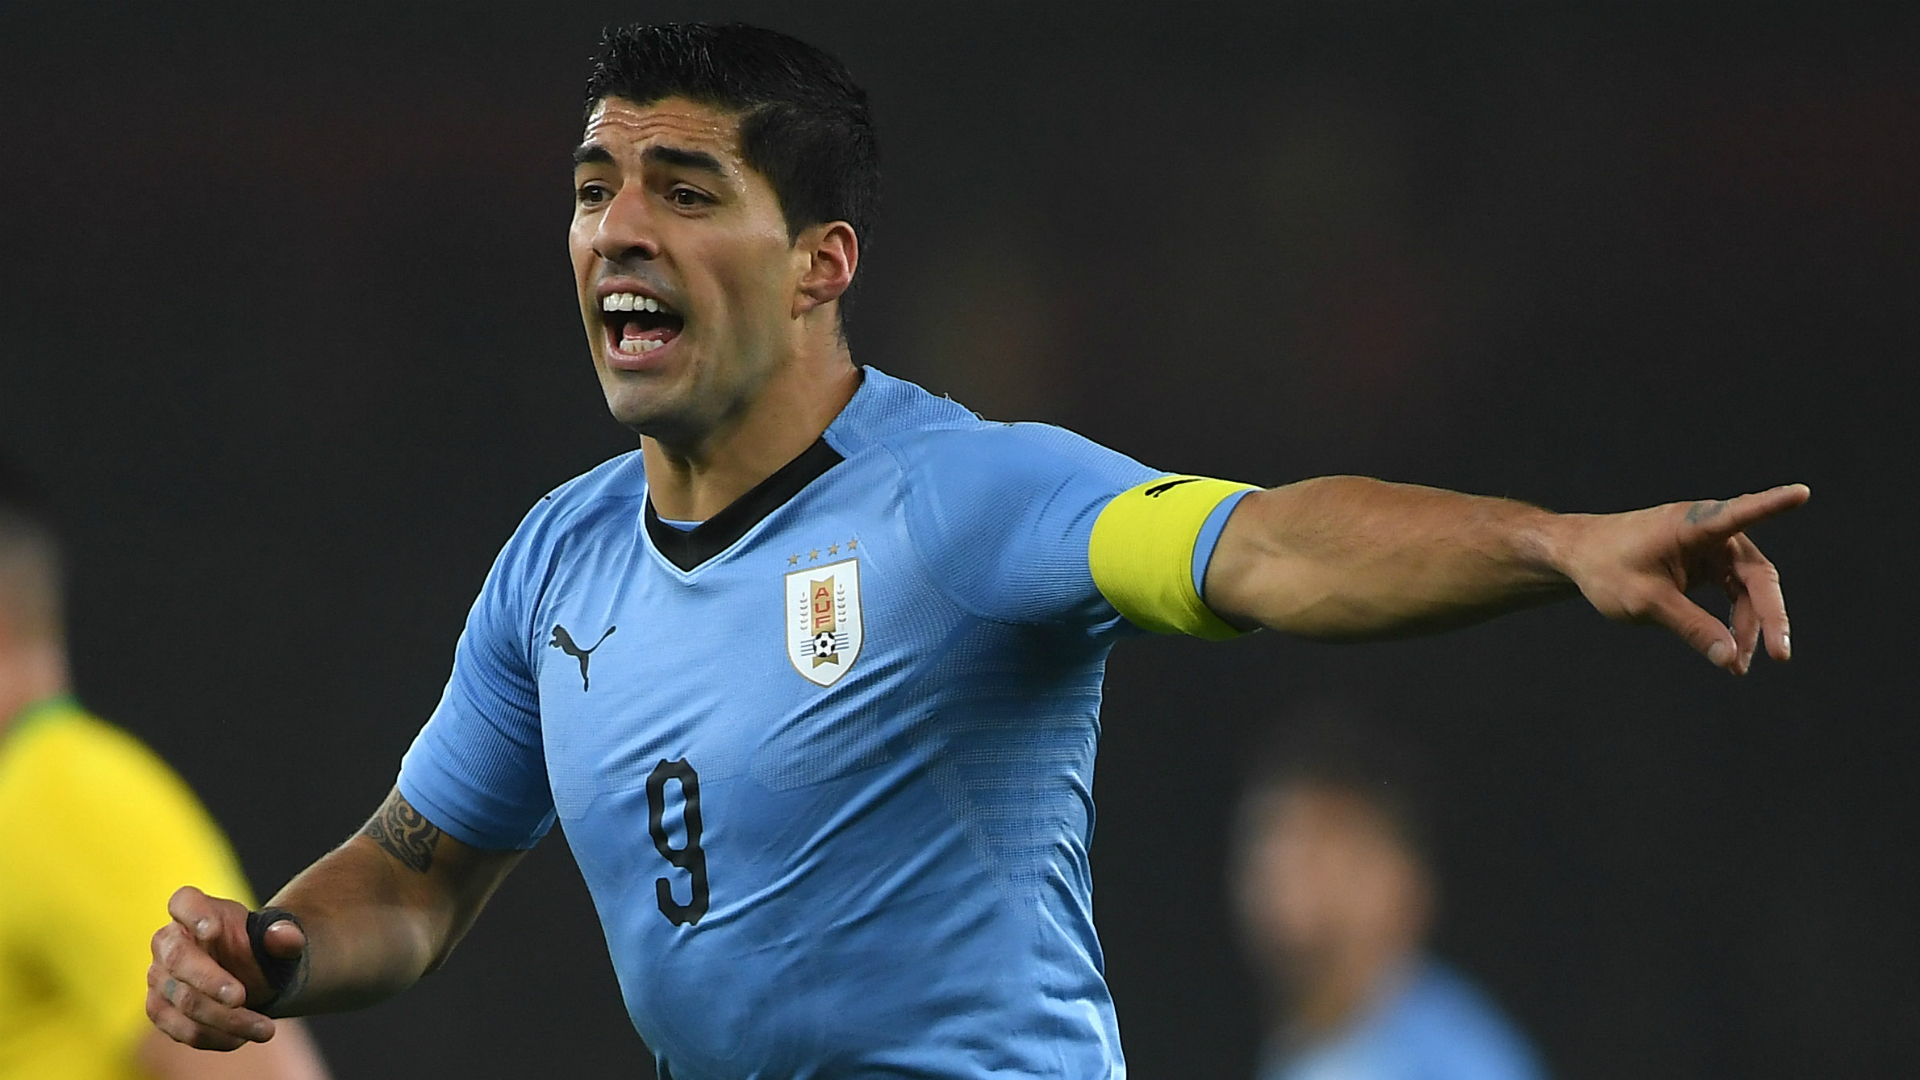 """Oscar Tabarez has """"high hopes"""" about Luis Suarez's fitness ahead of next month's Copa America."""